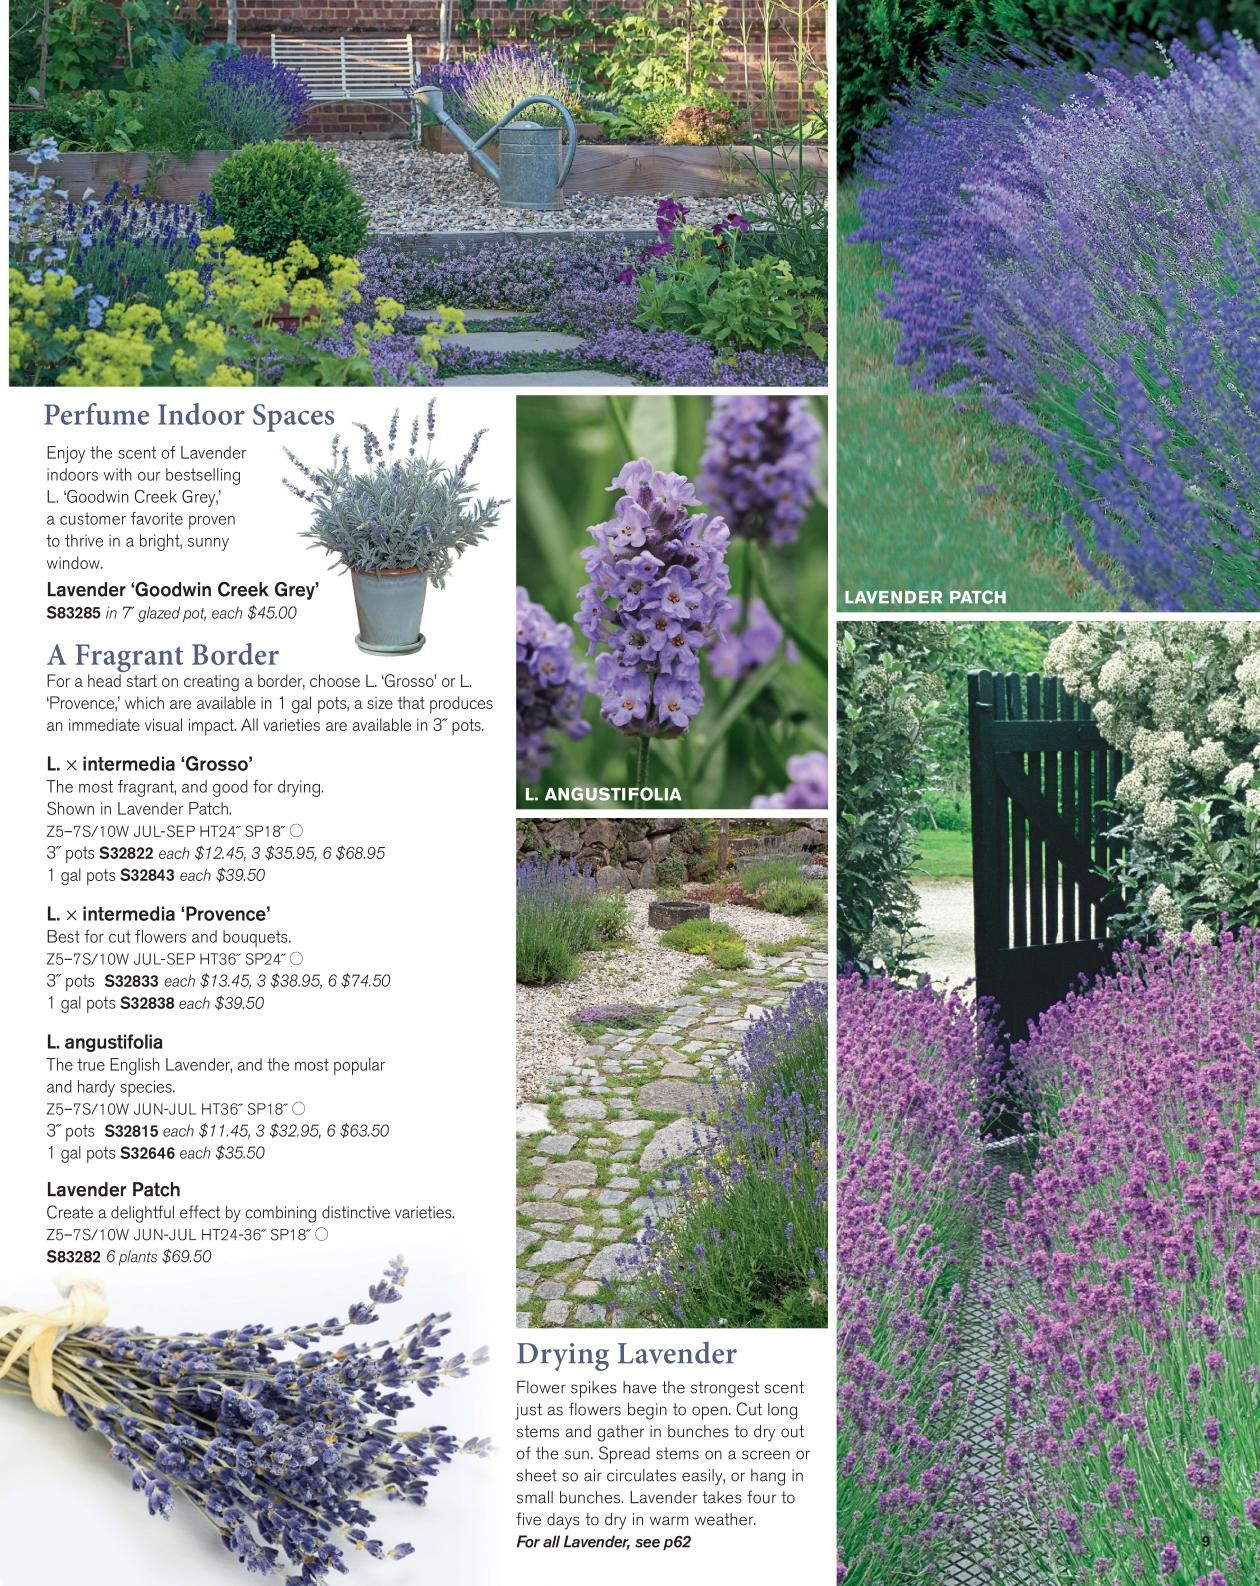 White Flower Farm Catalogs Lavender I Luv Pinterest White